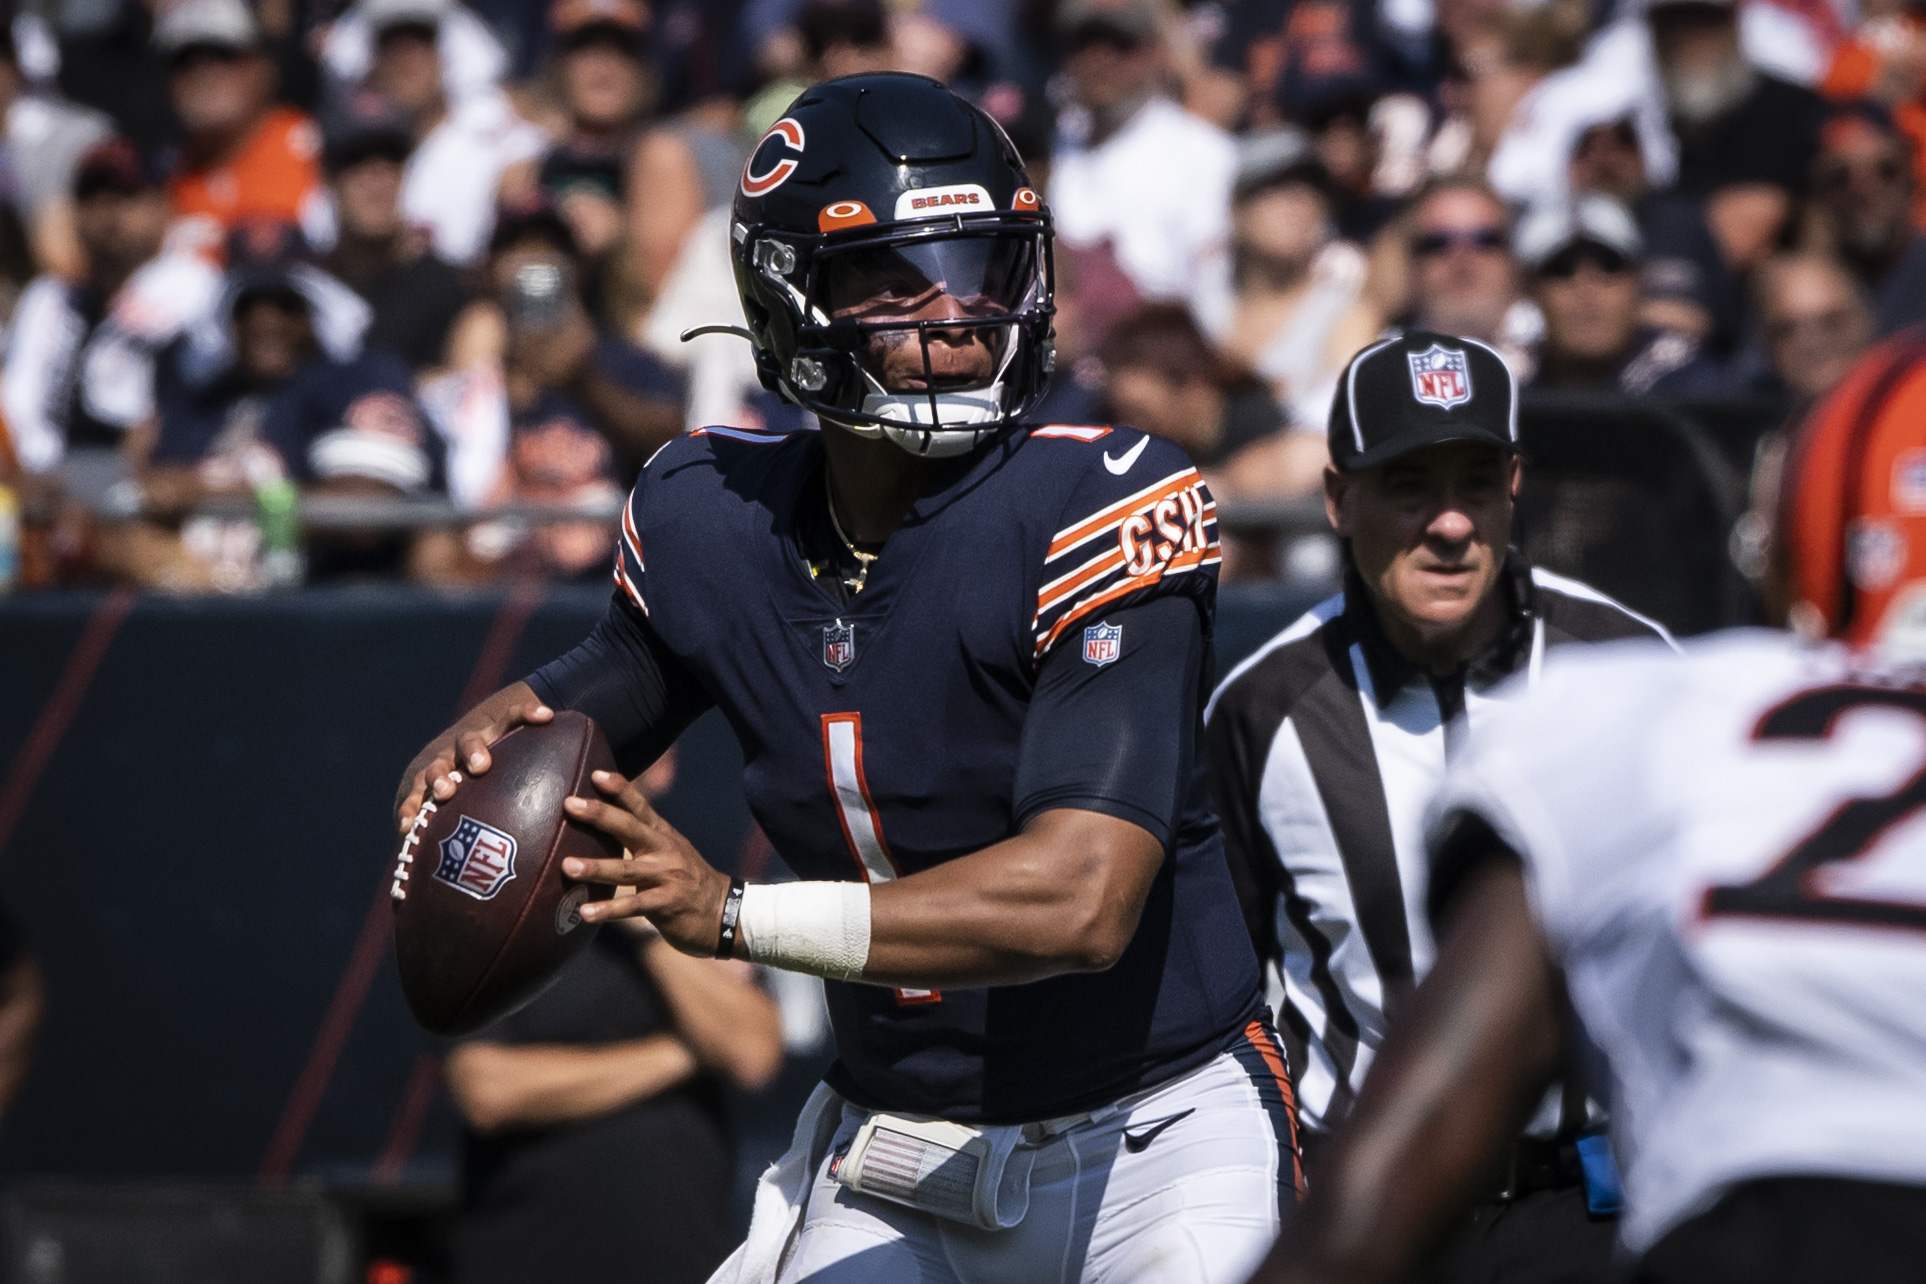 Bears quarterback Justin Fields looks to throw against the Bengals in the second half Sunday.